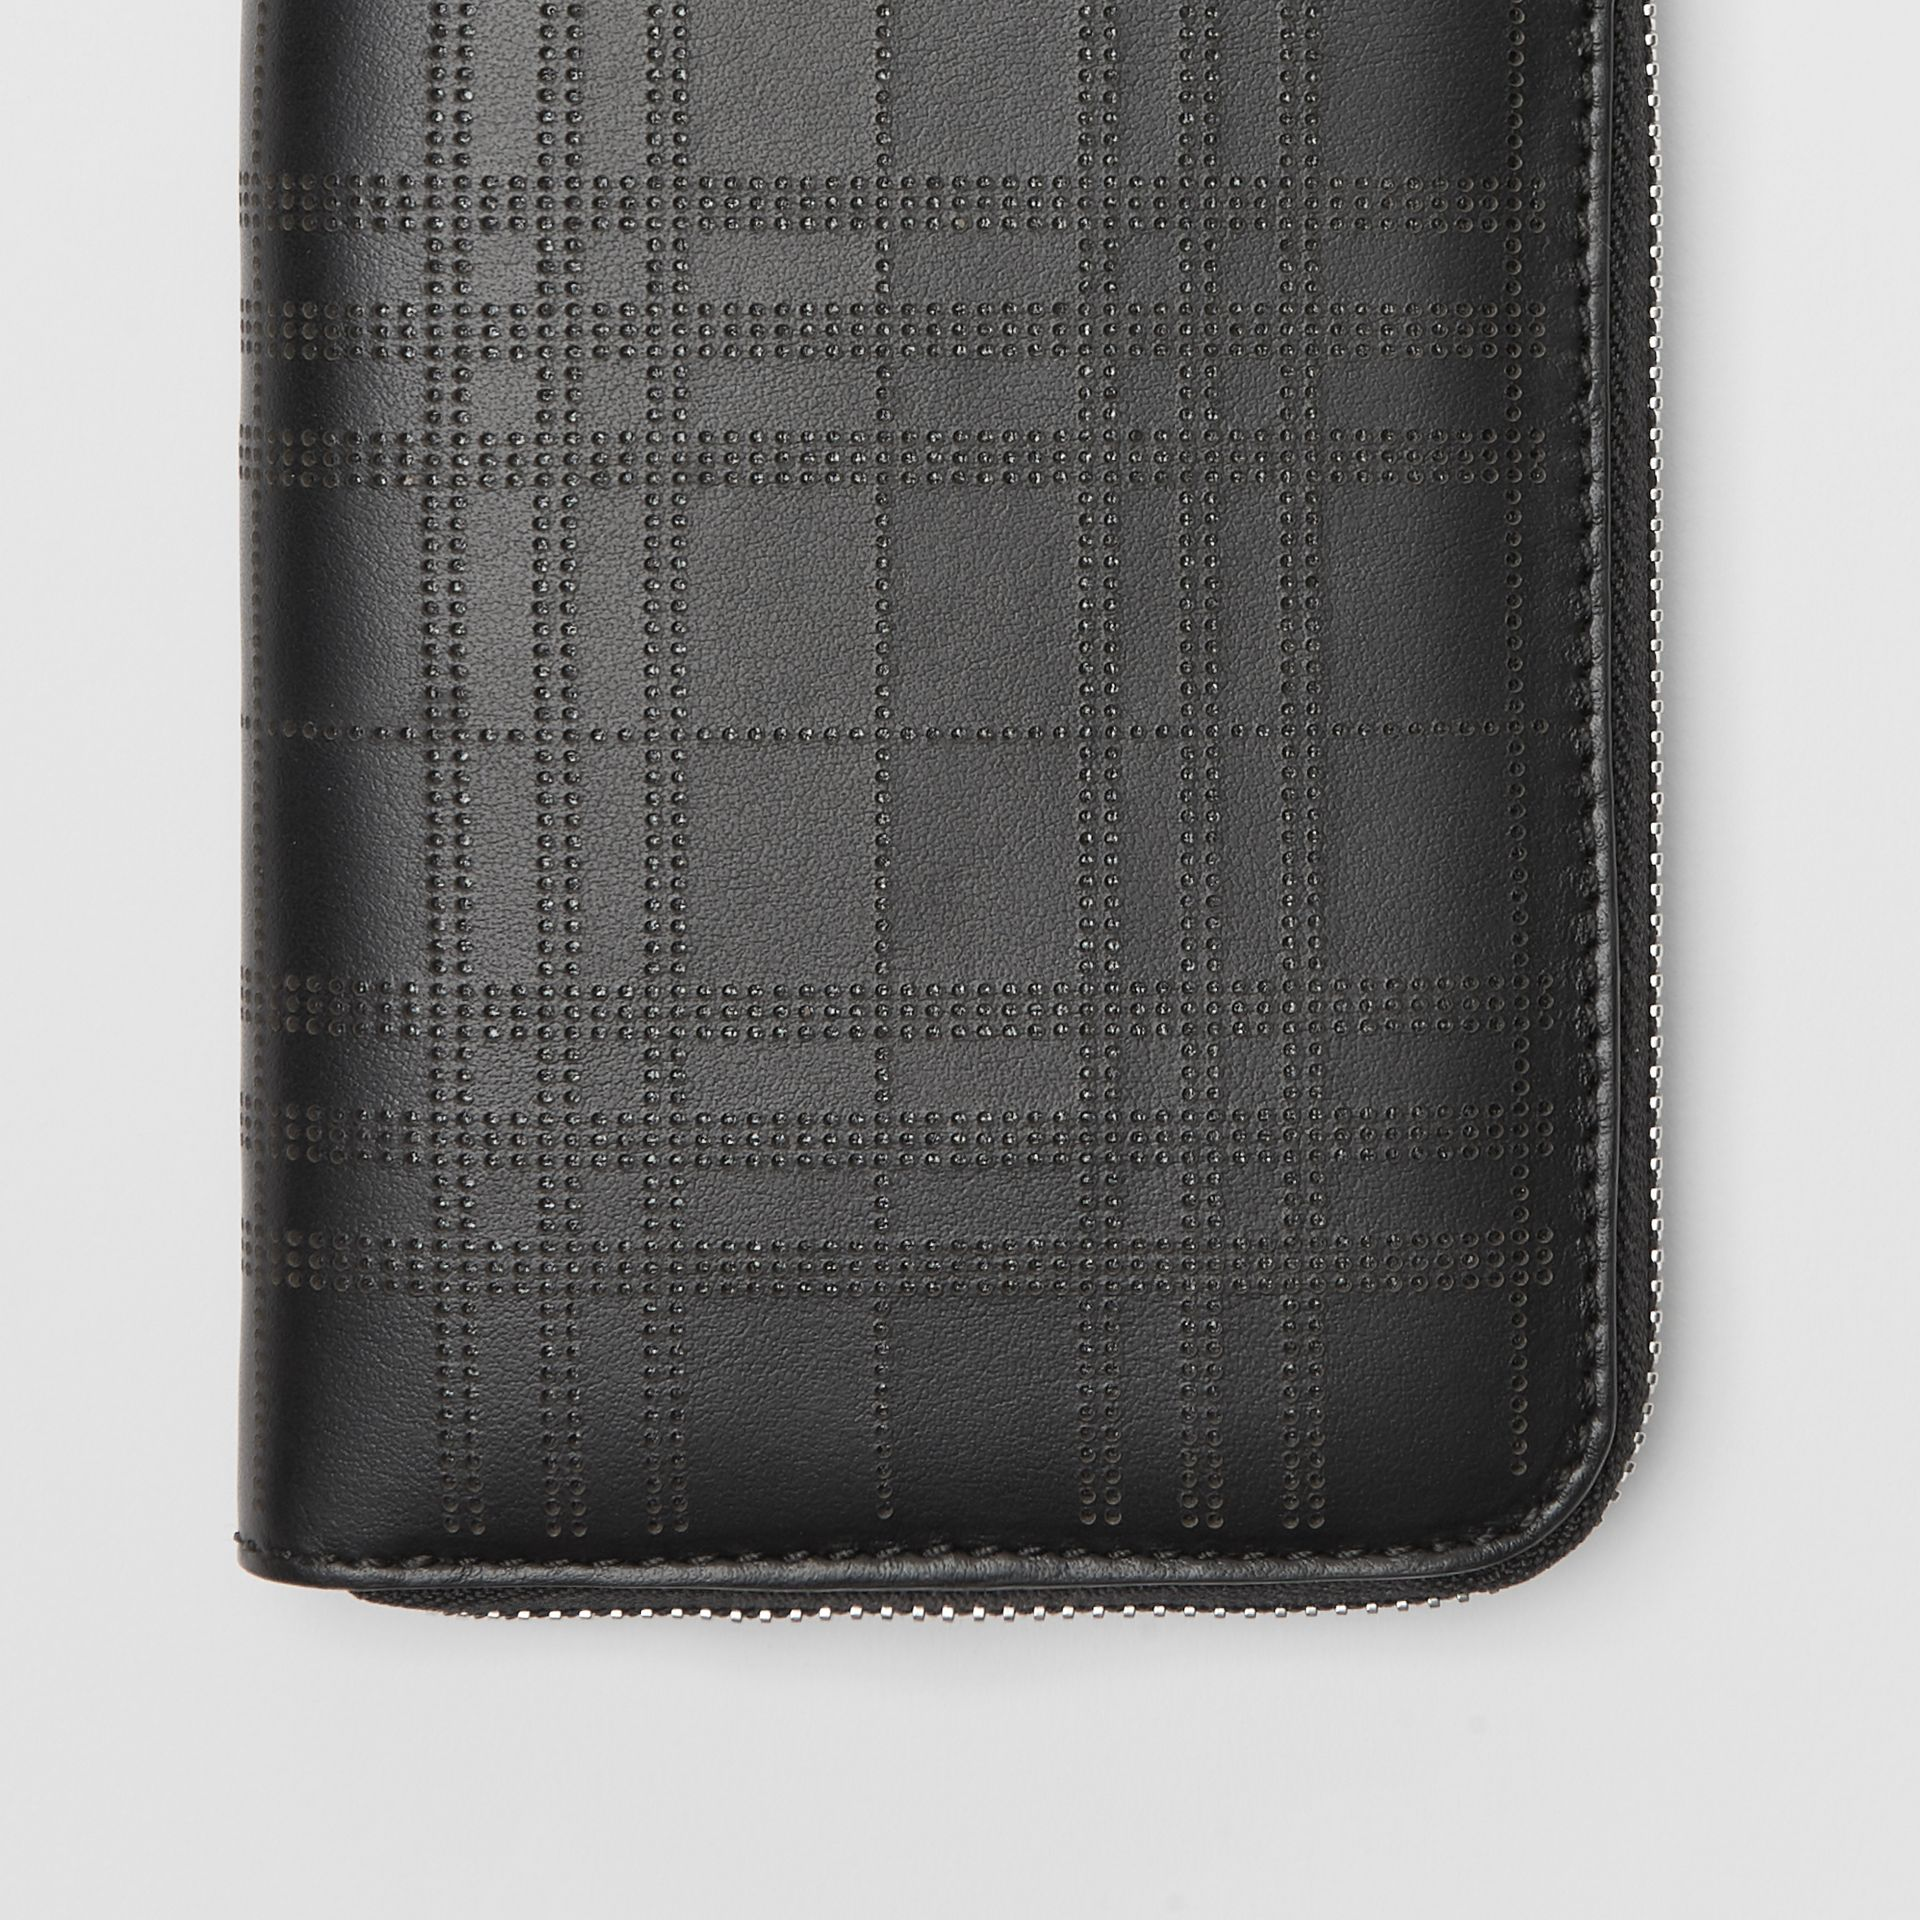 Perforated Check Leather Ziparound Wallet in Black - Men | Burberry Australia - gallery image 1